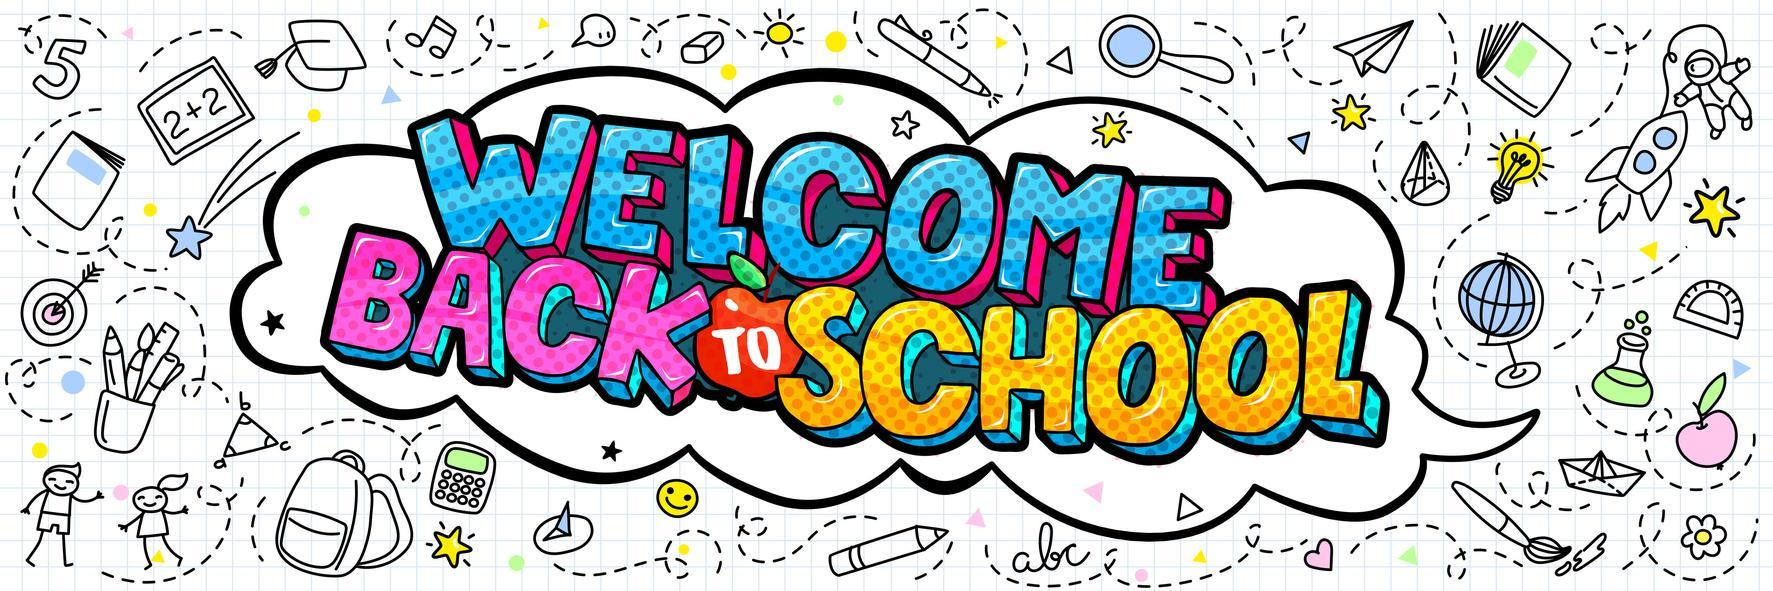 Welcome Back to School